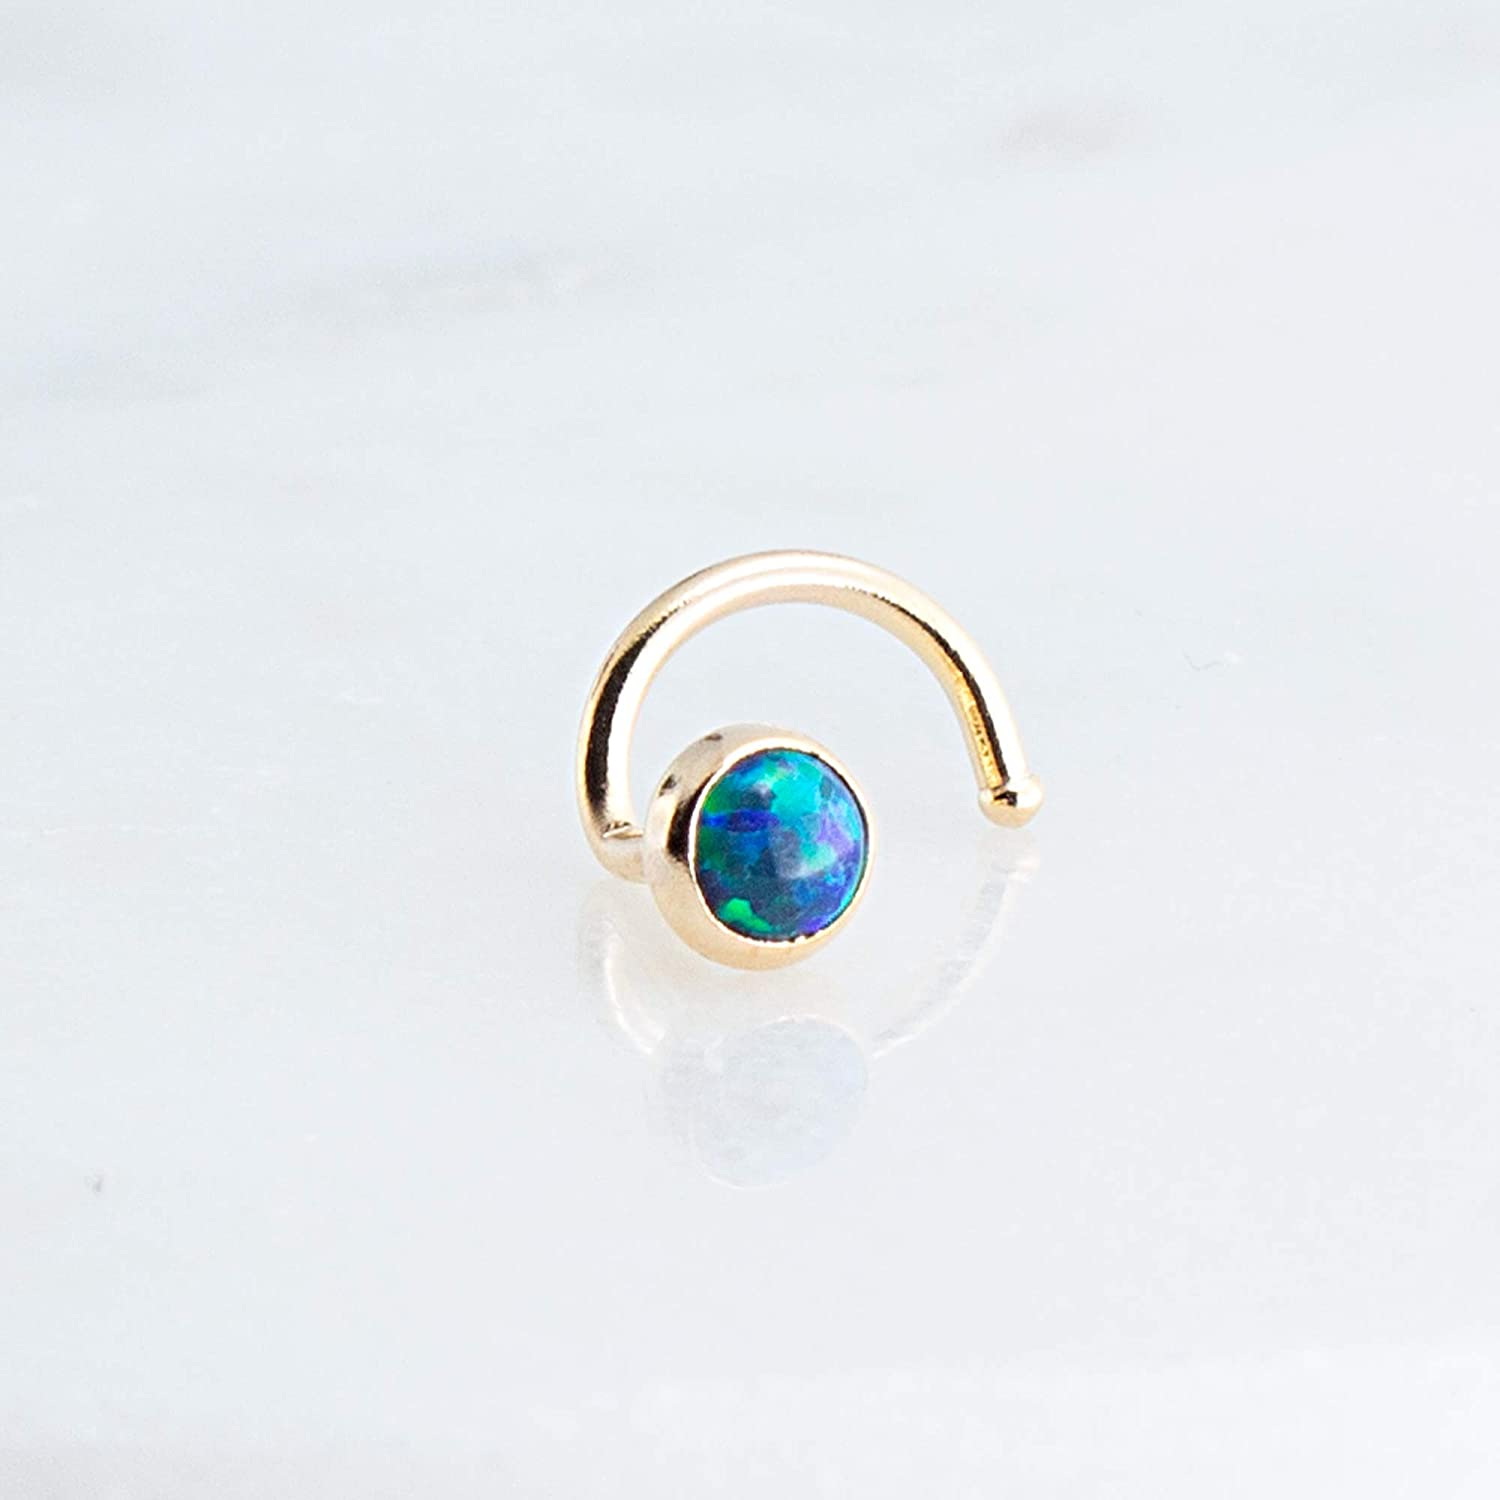 14K Gold Filled and Green Blue Opal Stone Nose Nostril Screw for the Left Side 6145IsNYjtL